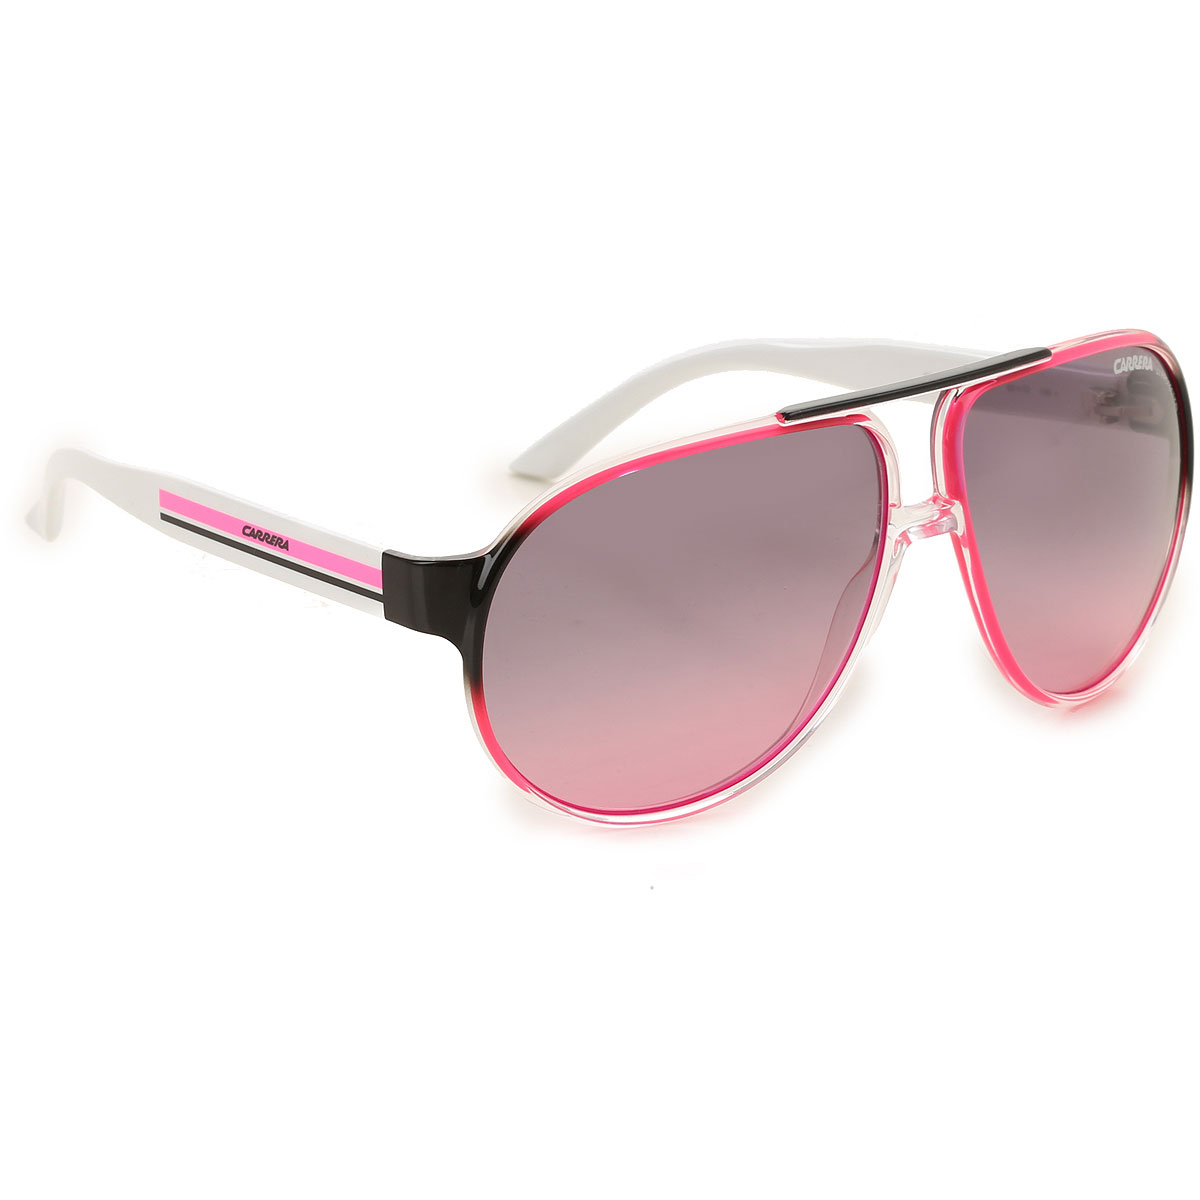 Carrera Sunglasses On Sale, Fluo Fuchsia, 2019